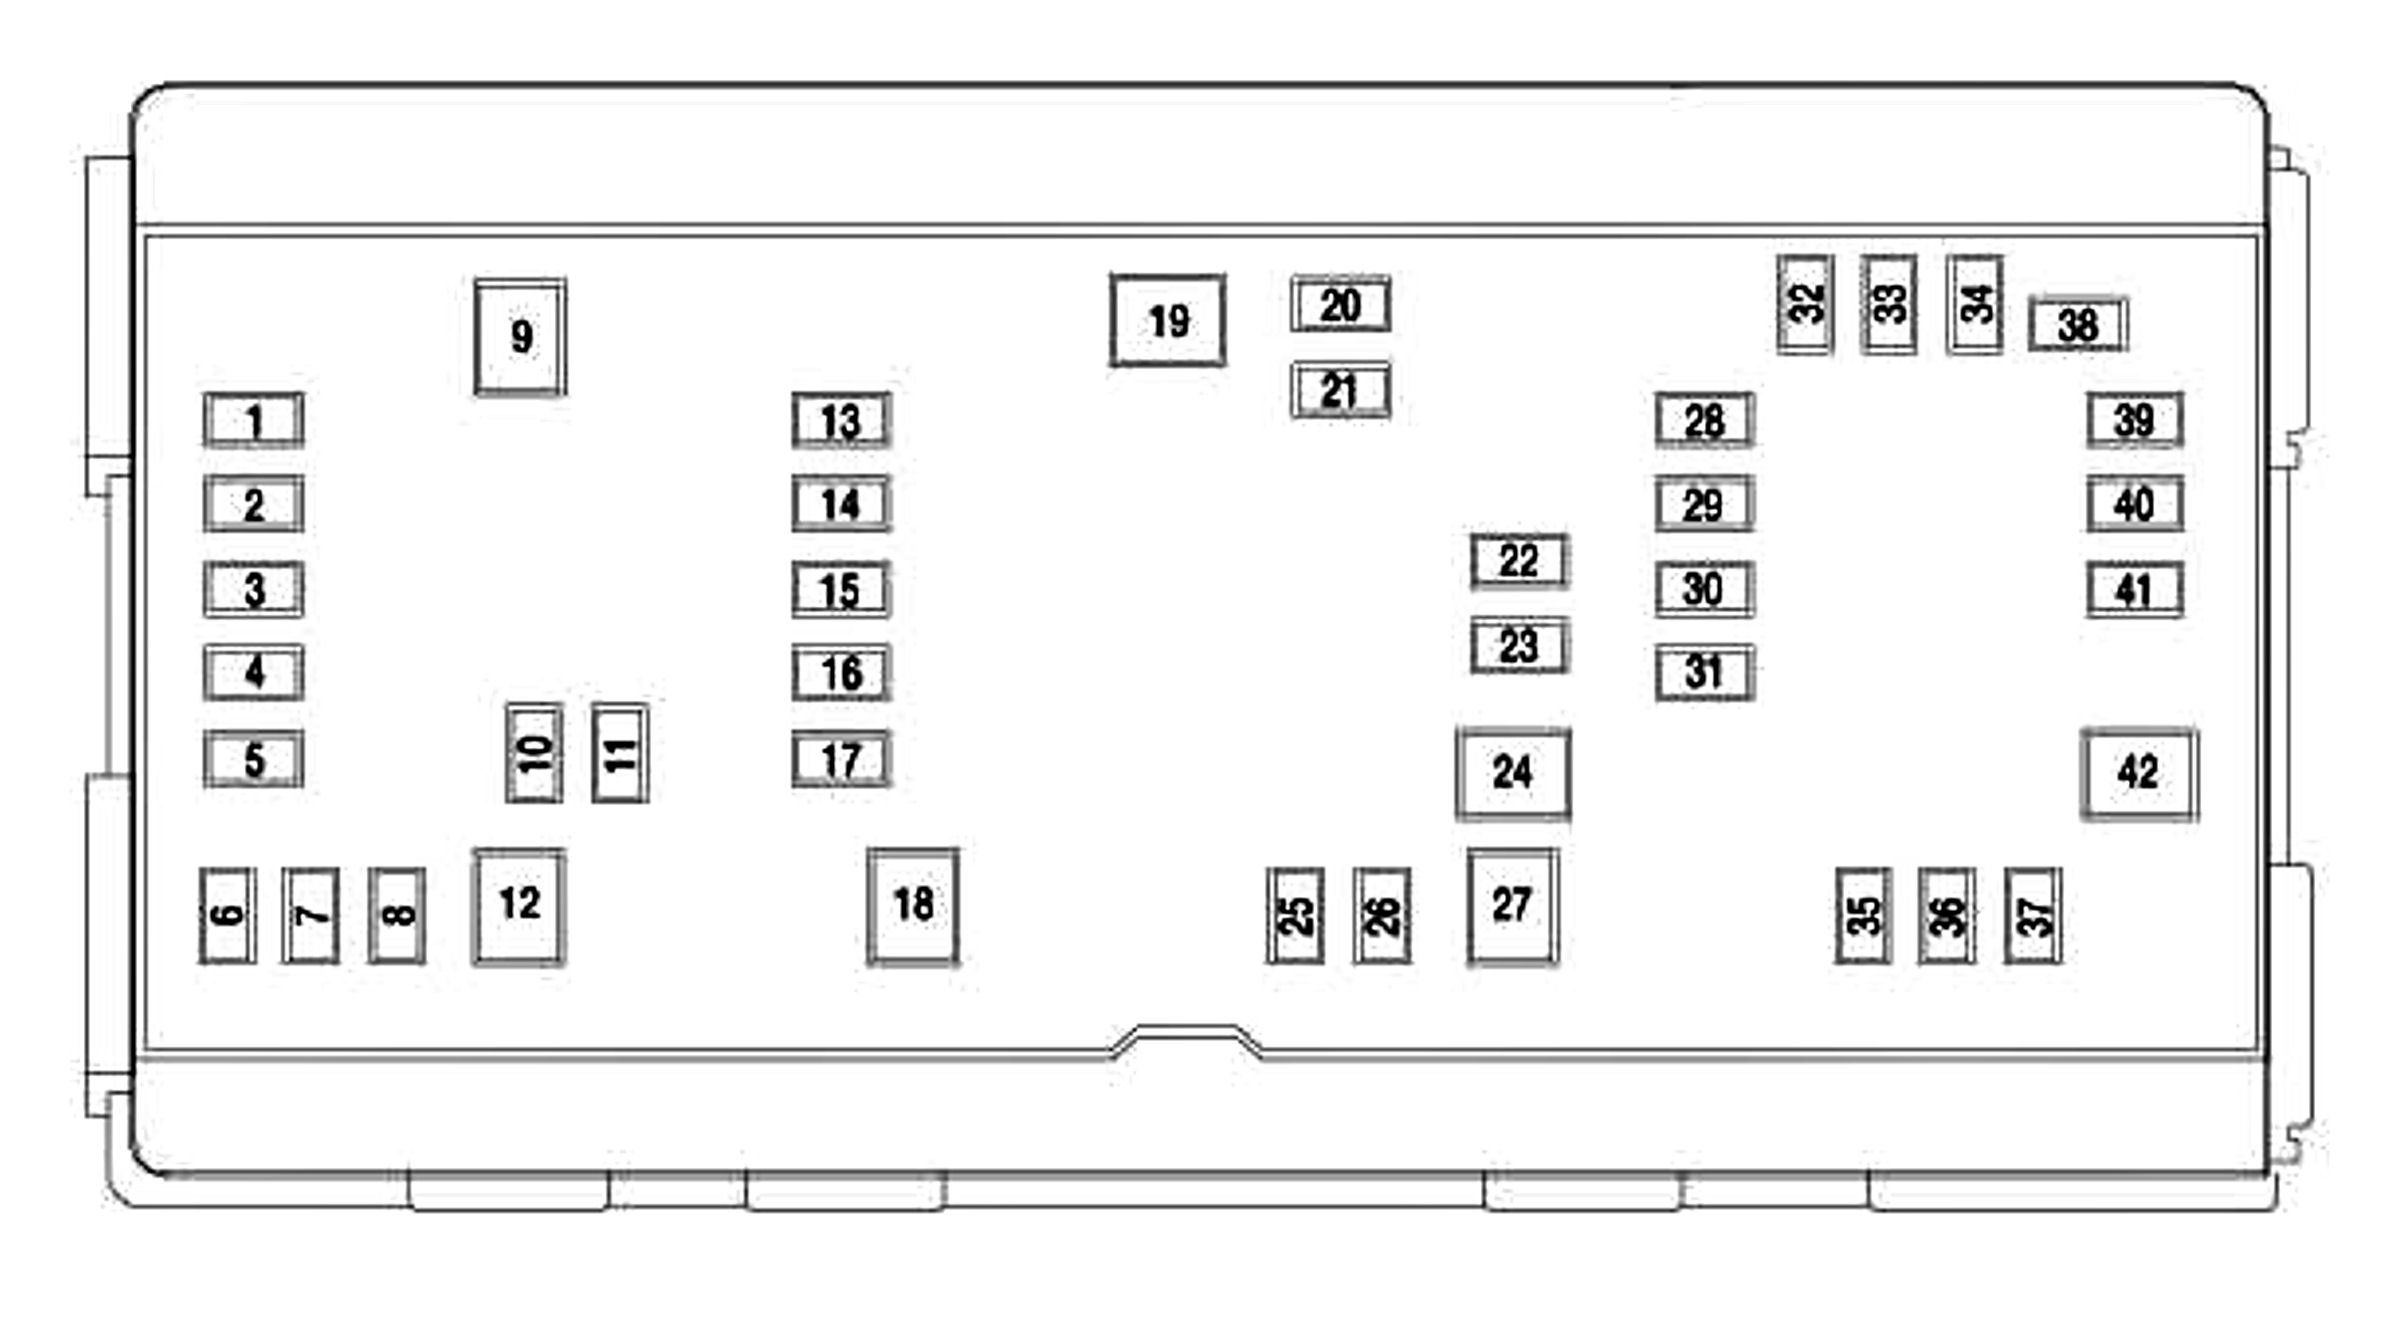 2008 dodge 3500 fuse panel diagram - wiring diagram data 08 dodge 3500 fuse box 2008 dodge ram 1500 fuse box layout tennisabtlg-tus-erfenbach.de